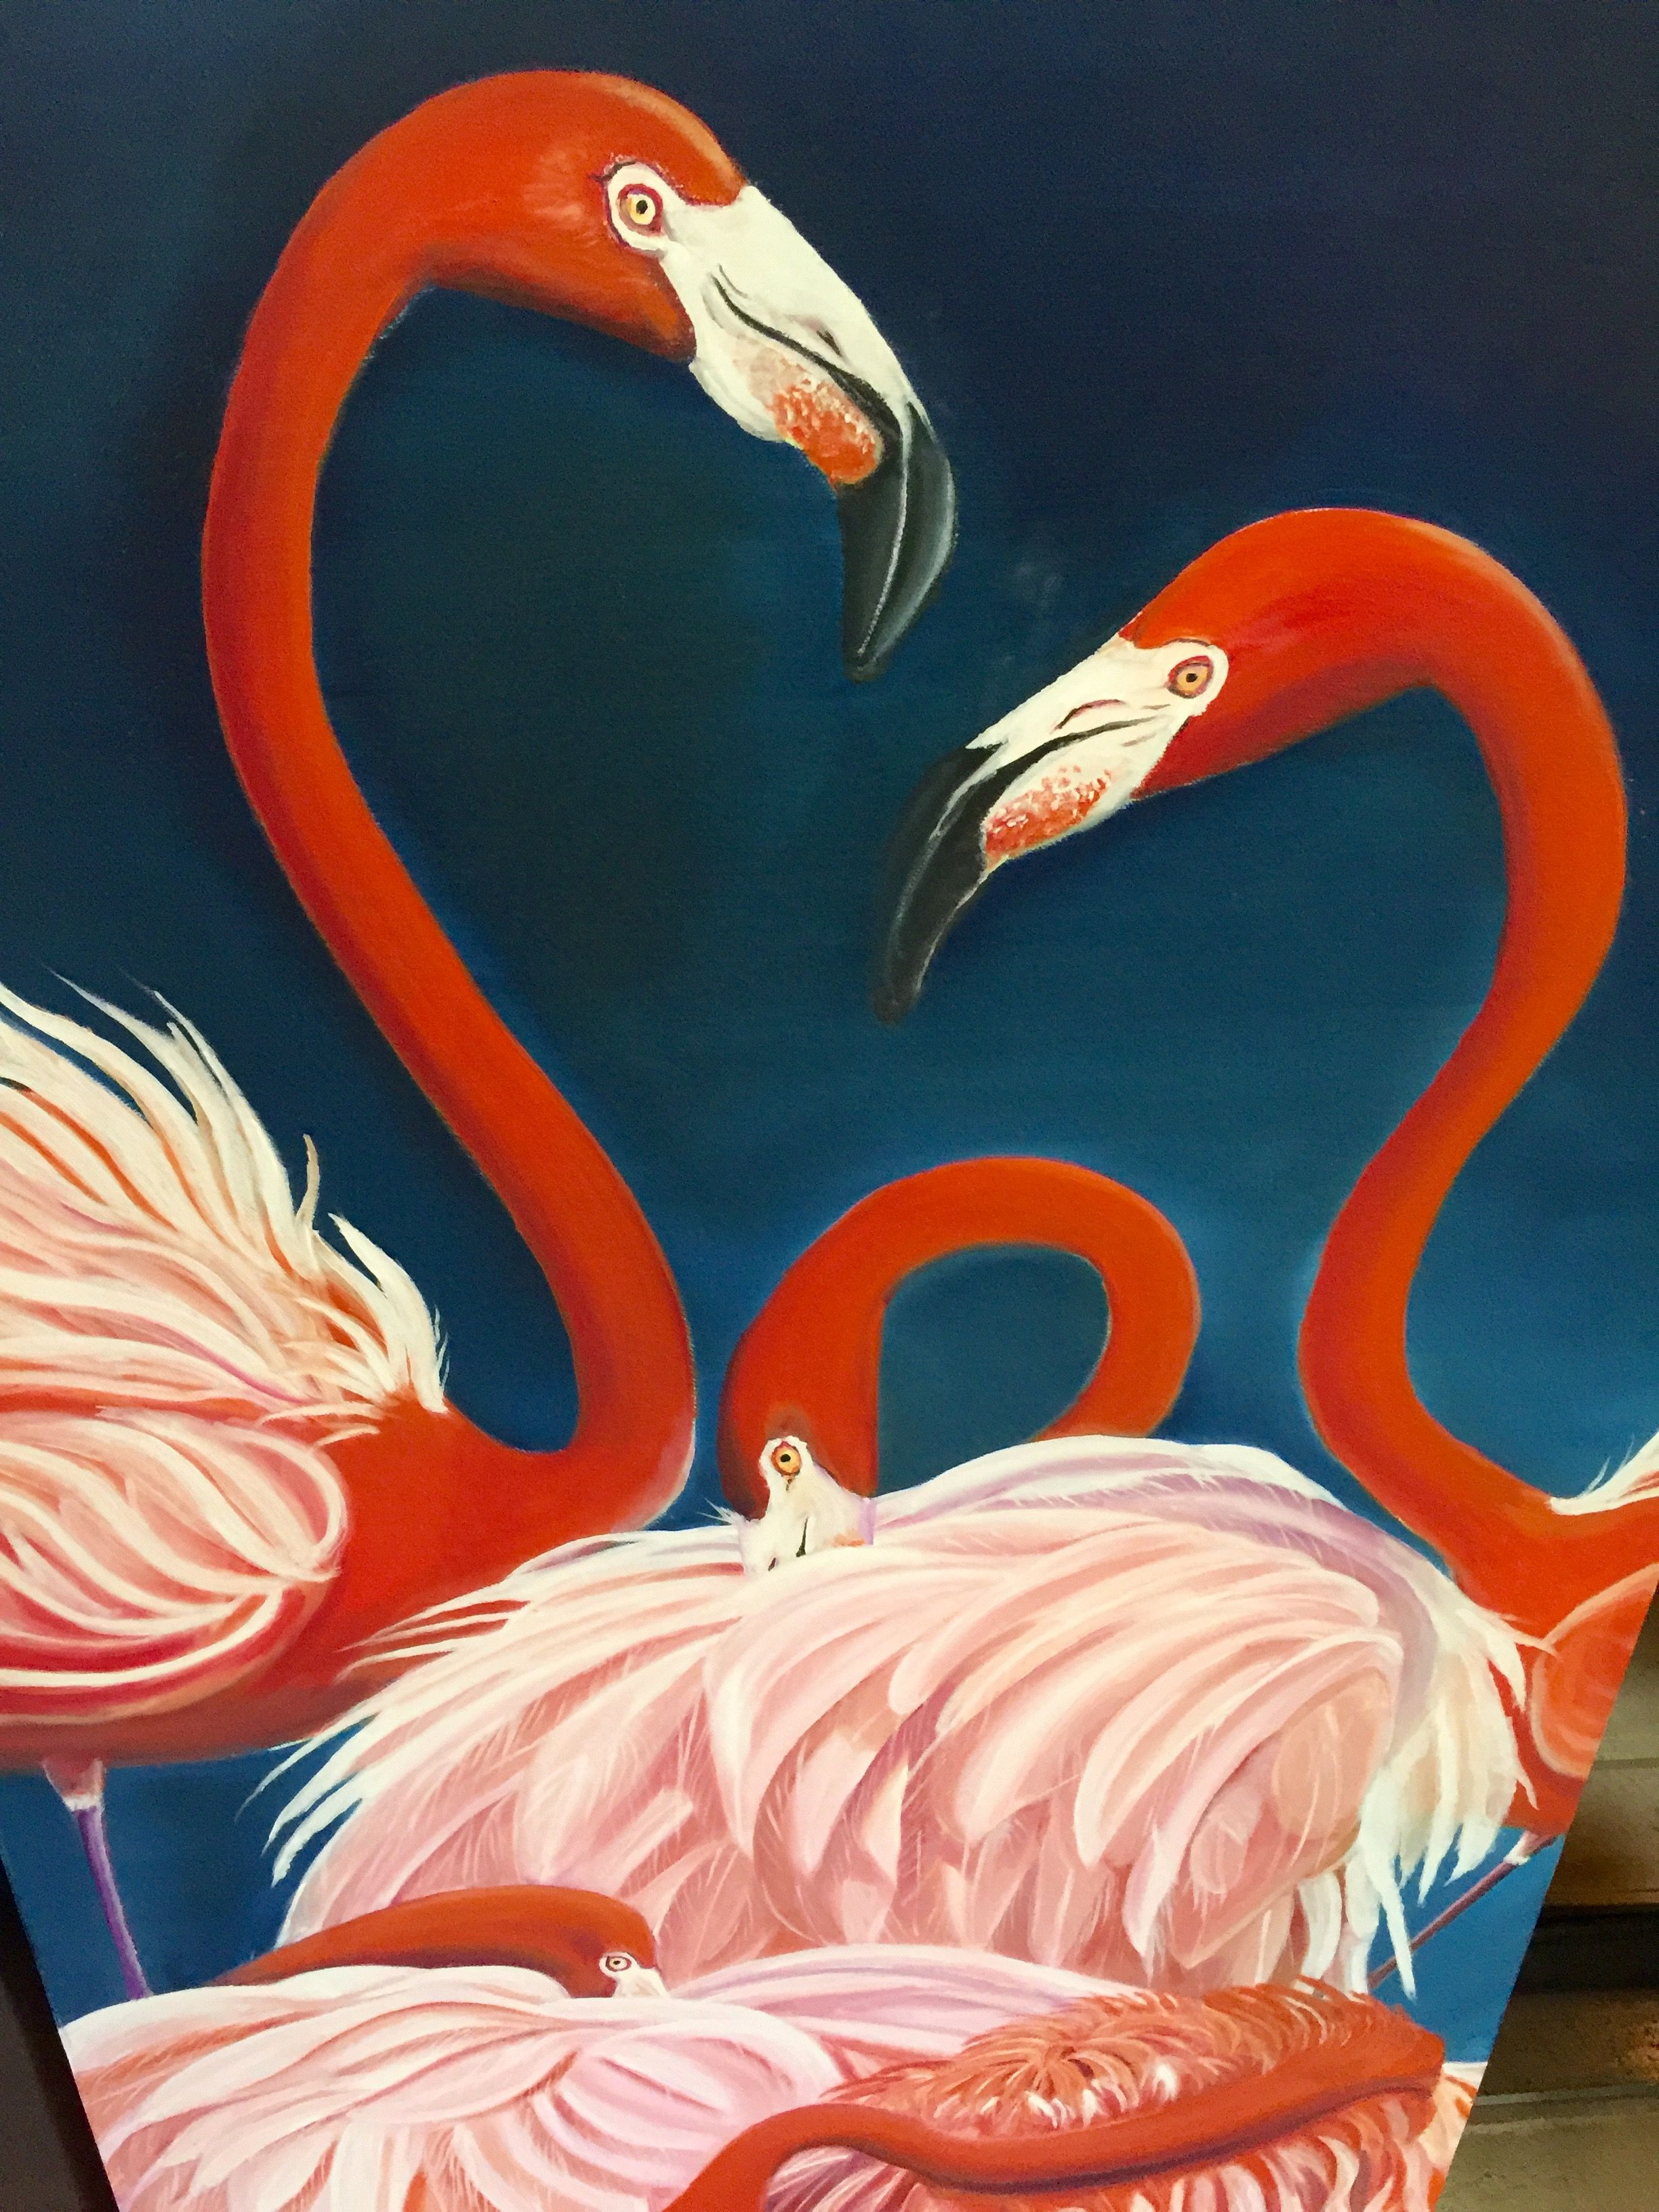 Pin by Martha Singh on Paintings Painting, Animals, Flamingo